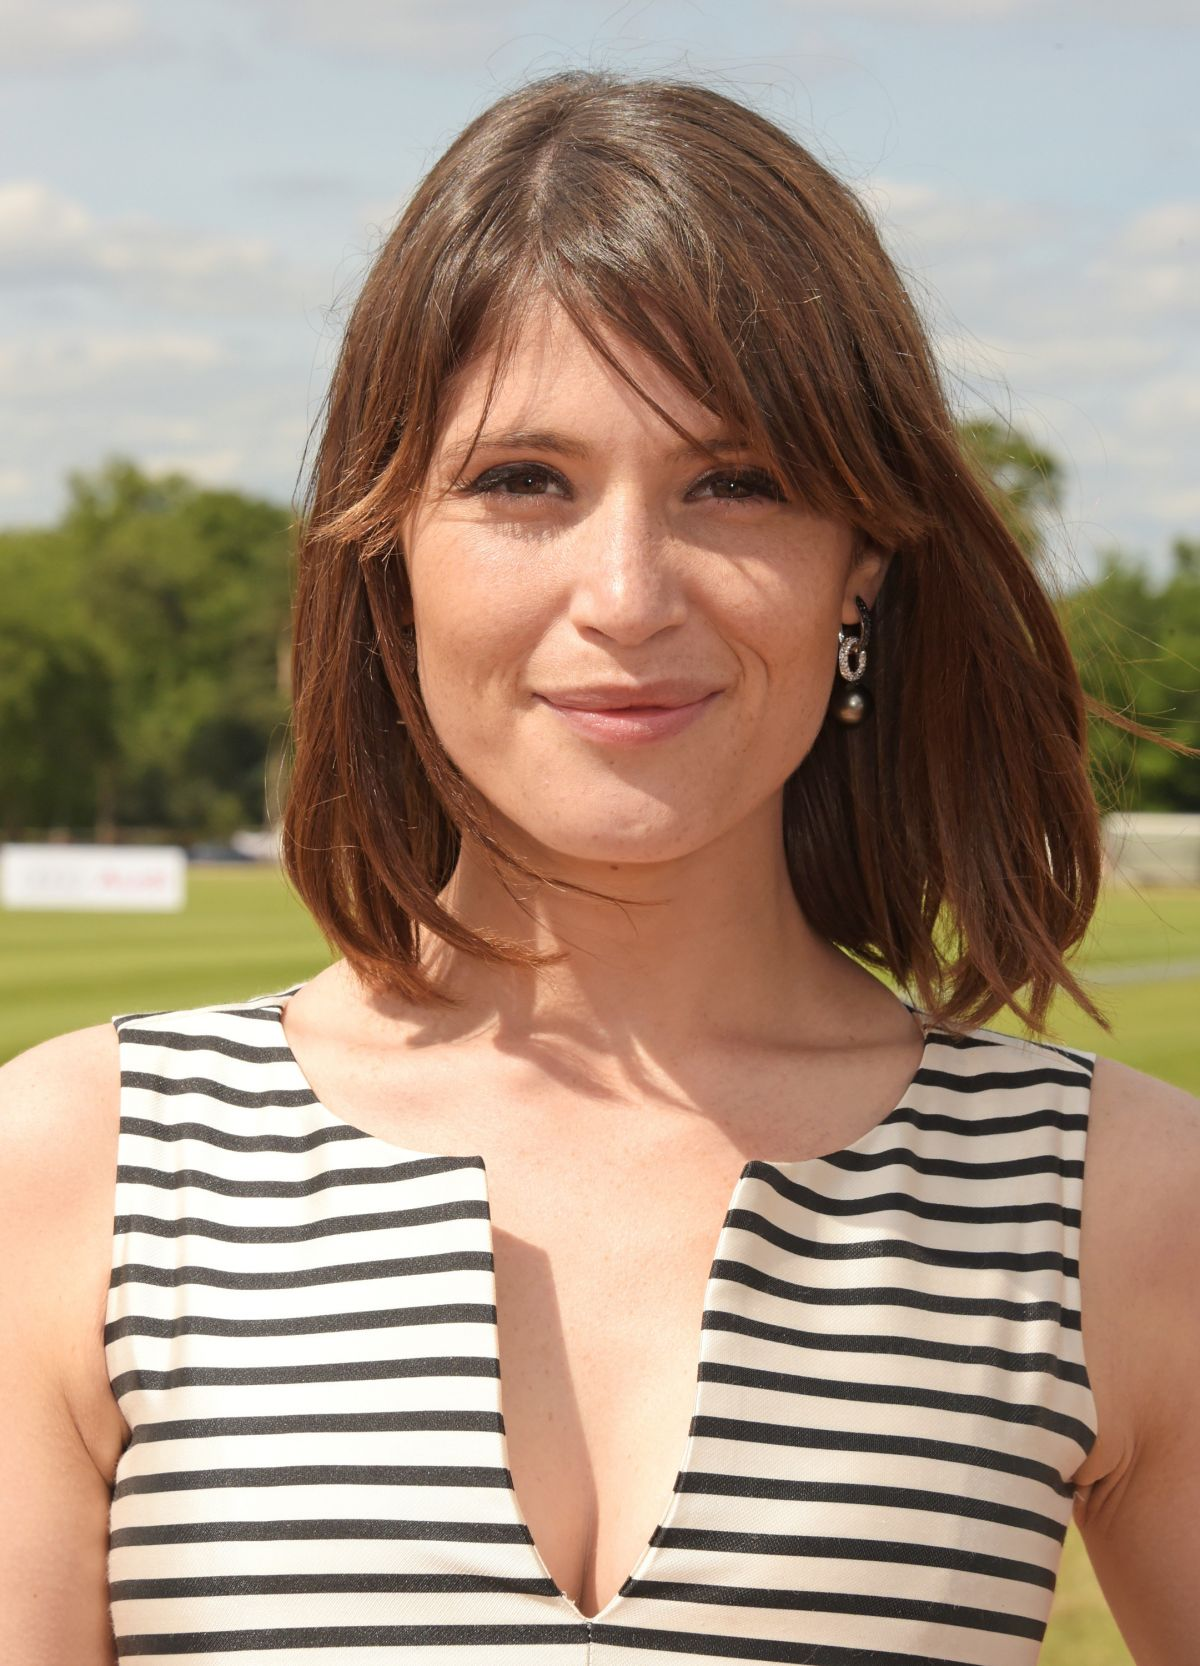 GEMMA ARTERTON at Audi Polo Challenge in London 05/30/2016